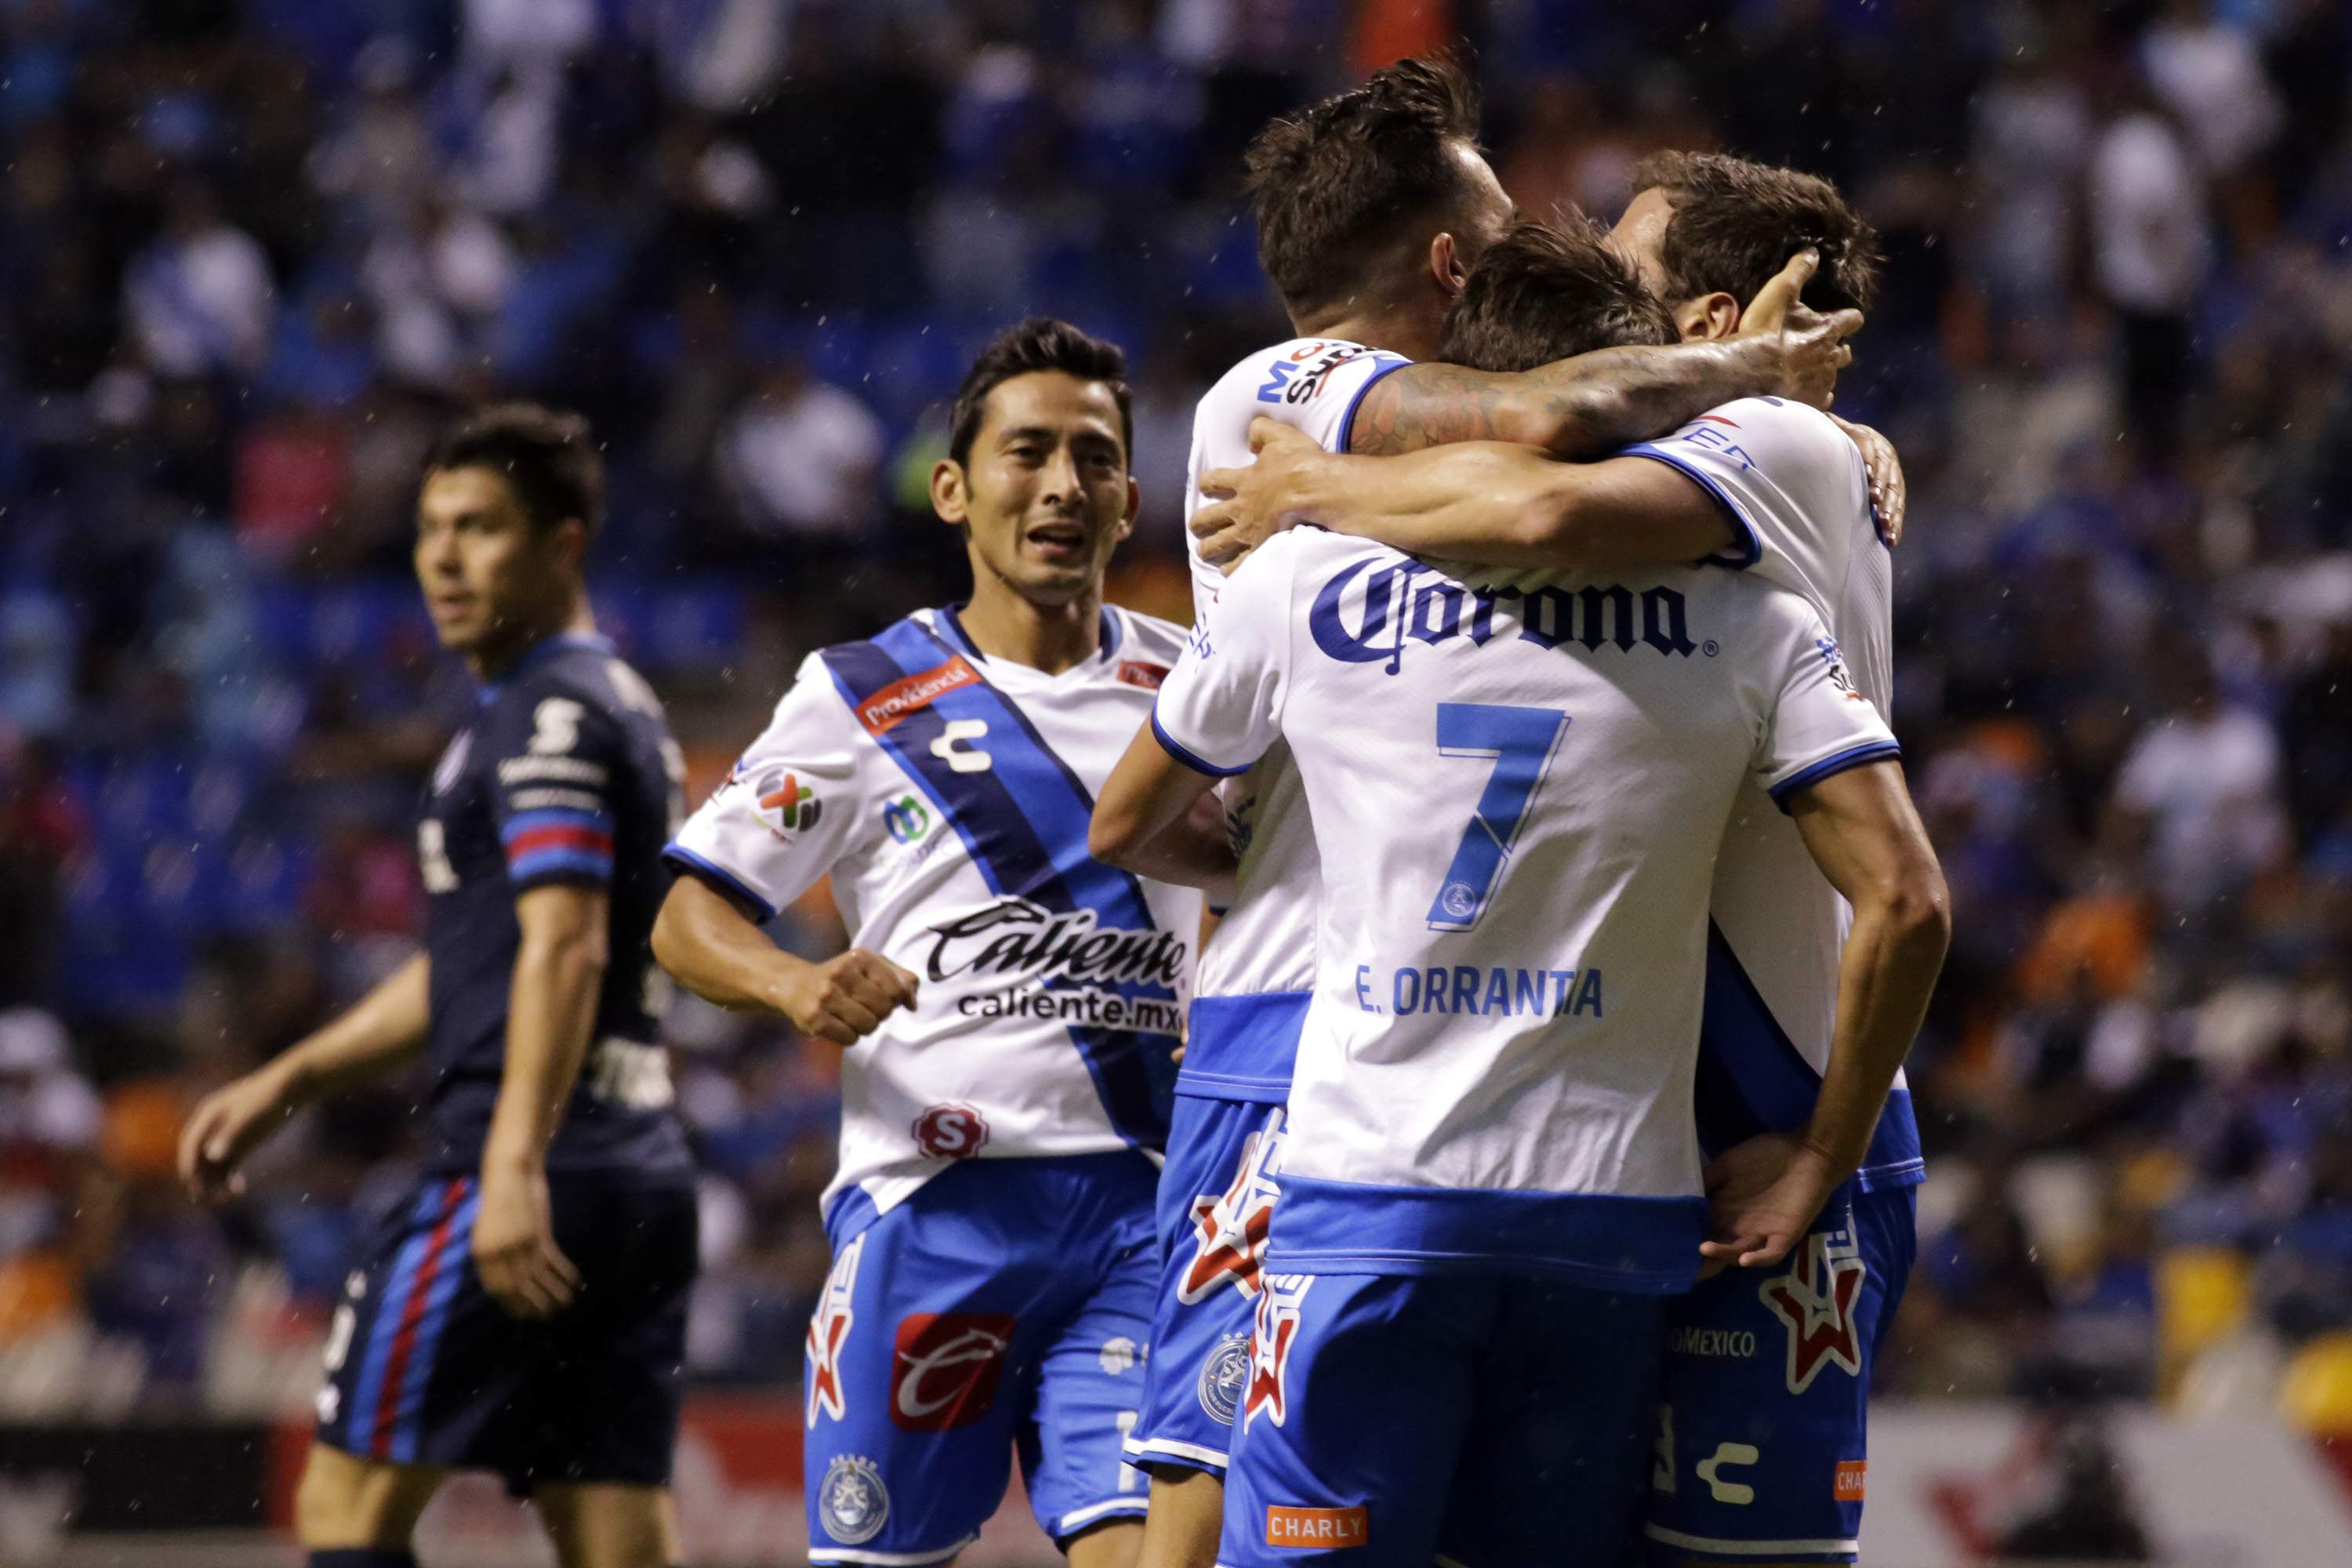 futbol-club-puebla-vs-cruz-azul-279830